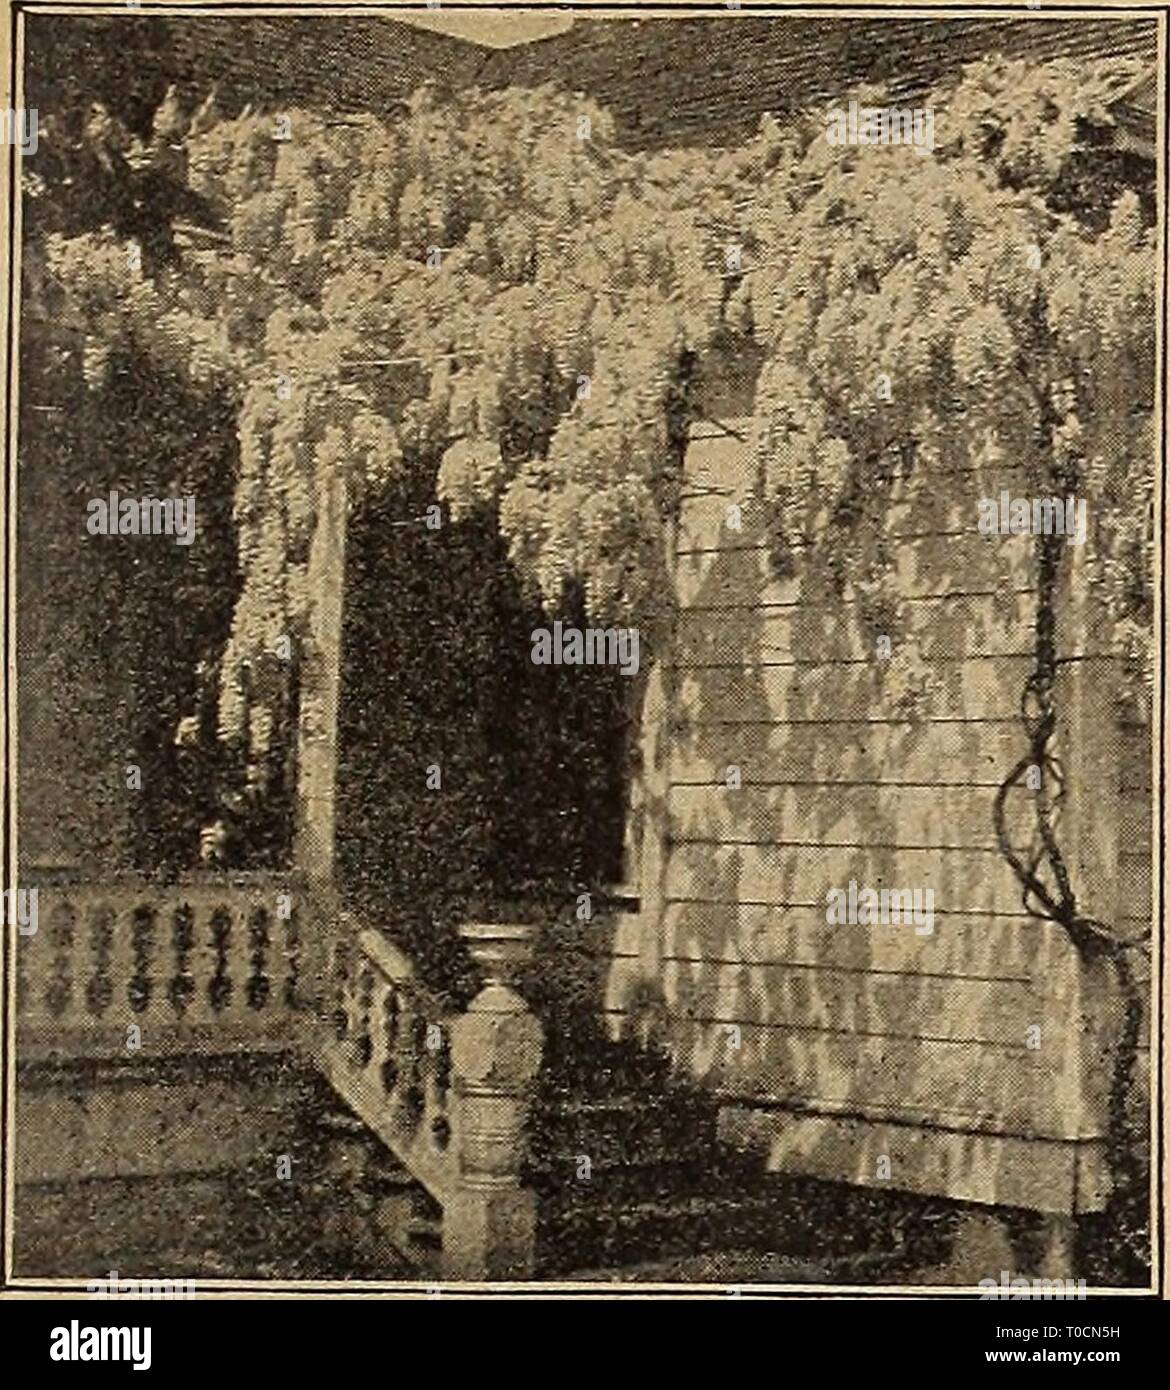 Dreer's garden book 1919 (1919) Dreer's garden book 1919 dreersgardenbook1919henr Year: 1919  'HENRTADREER -PHIIADELPHIAM ^ hARDYCLIMBiriC PLANTS' 211 1^    Wistaria Sinensis ^WIST ARIAS One of the best hardy chmbers, producing their great trusses of flowers in abundance during the month of May with some scattering bloom in August and September. While they succeed in any kind of soil they should be liberally fed when first planted to give them a vigorous start. (See cut.) riultijuga. A Japanese variety, bearing loose panicles frequently 3 feet long of deep purple flowers. Sinensis. The favorit - Stock Image